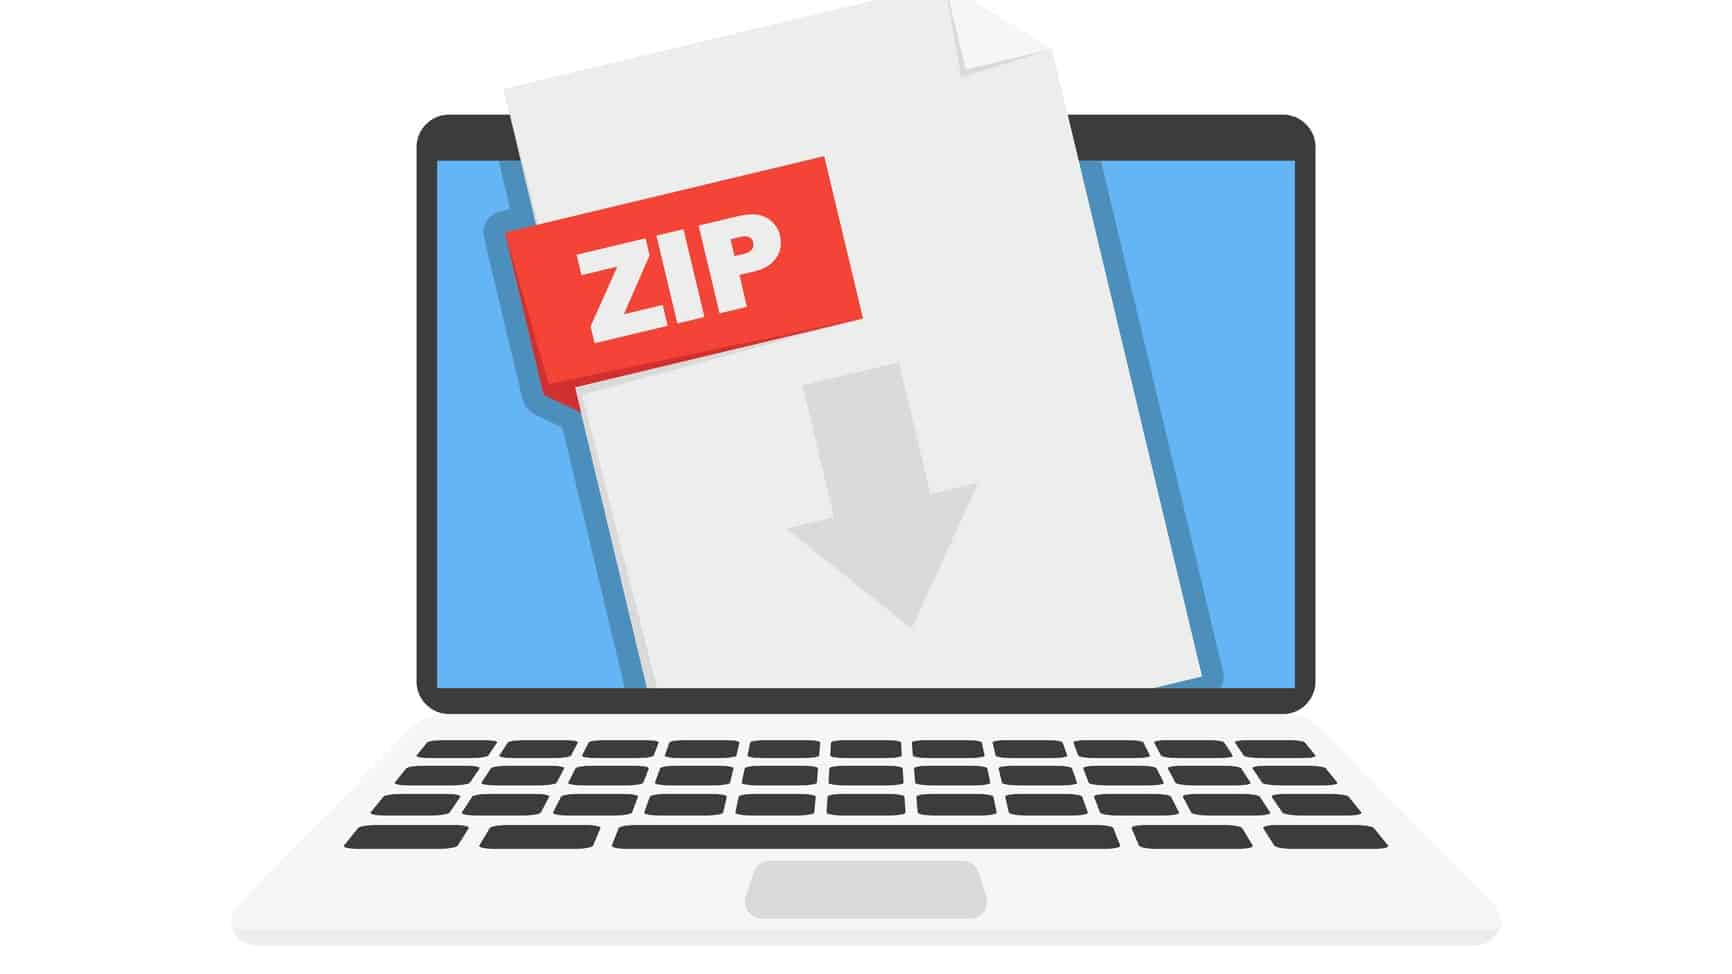 illustration of laptop with down arrow and the word zip representing falling zip share price